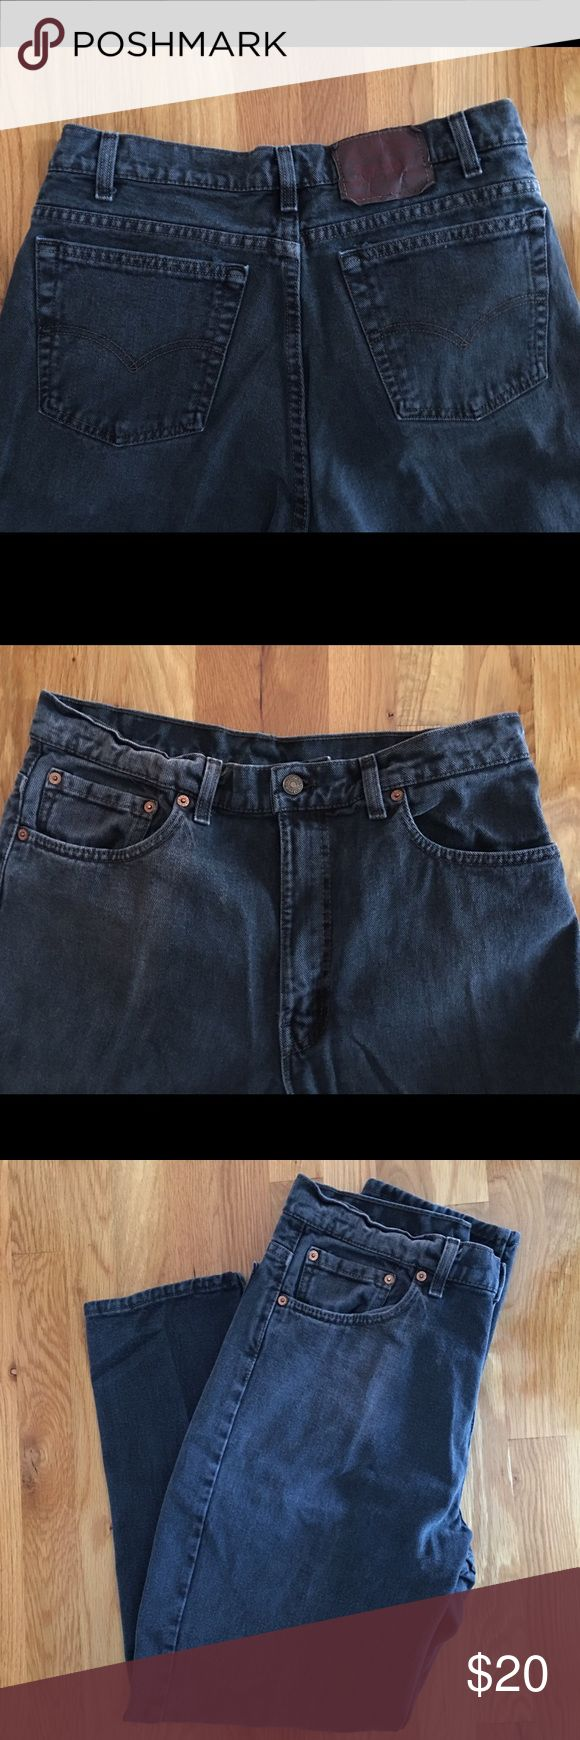 """Men Levi's 550 34x30 Men Levi's 550 Relaxed Fit Tapered Leg 34 x 30. 100% cotton. Made in the U.S.A 🇺🇸. Good pre-owned condition. The red """"Levi's"""" tab was cut off. They were kept in a smoke free home. Levi's Jeans Relaxed"""